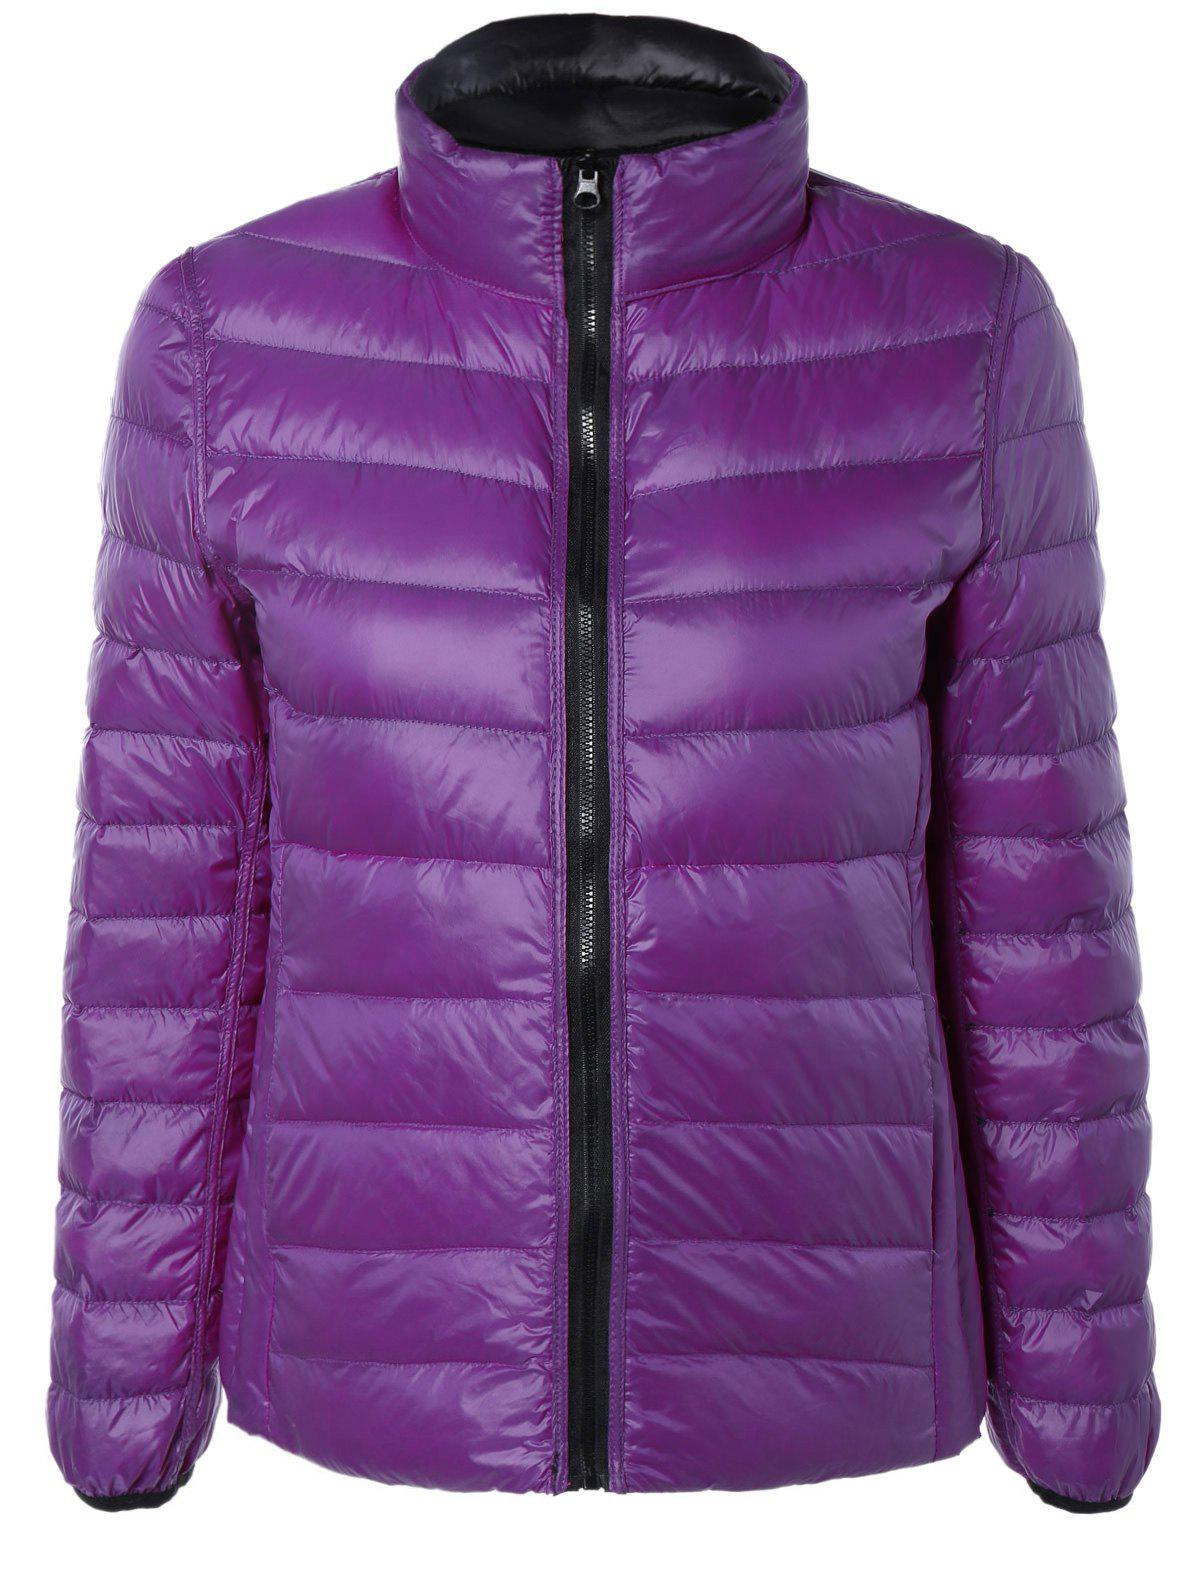 Plus Size Reversible Down Jacket - BLACK/PURPLE XL